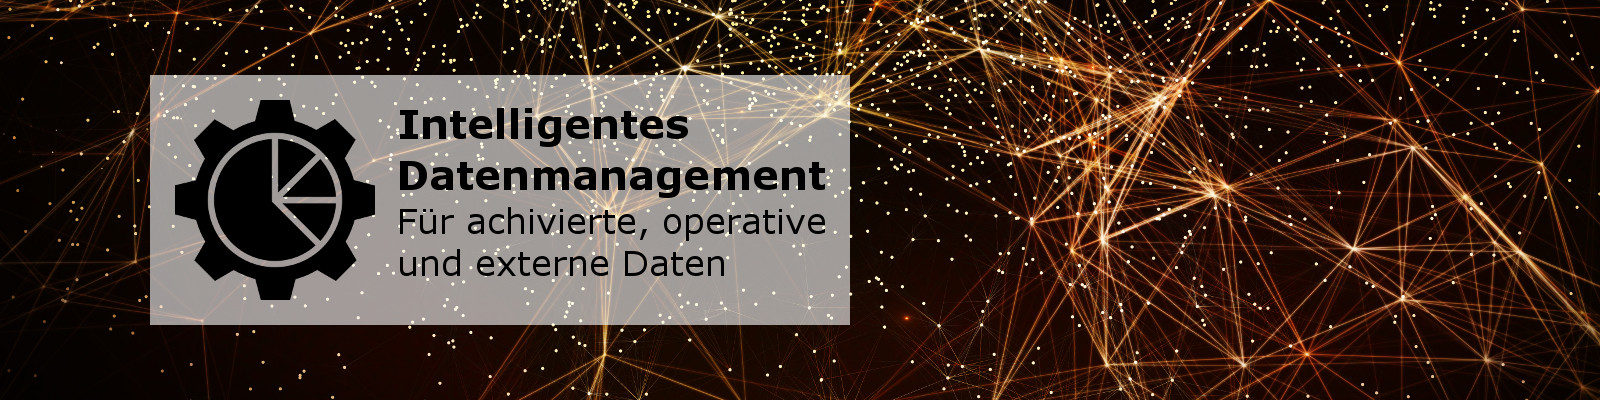 Datenmanagement_Banner